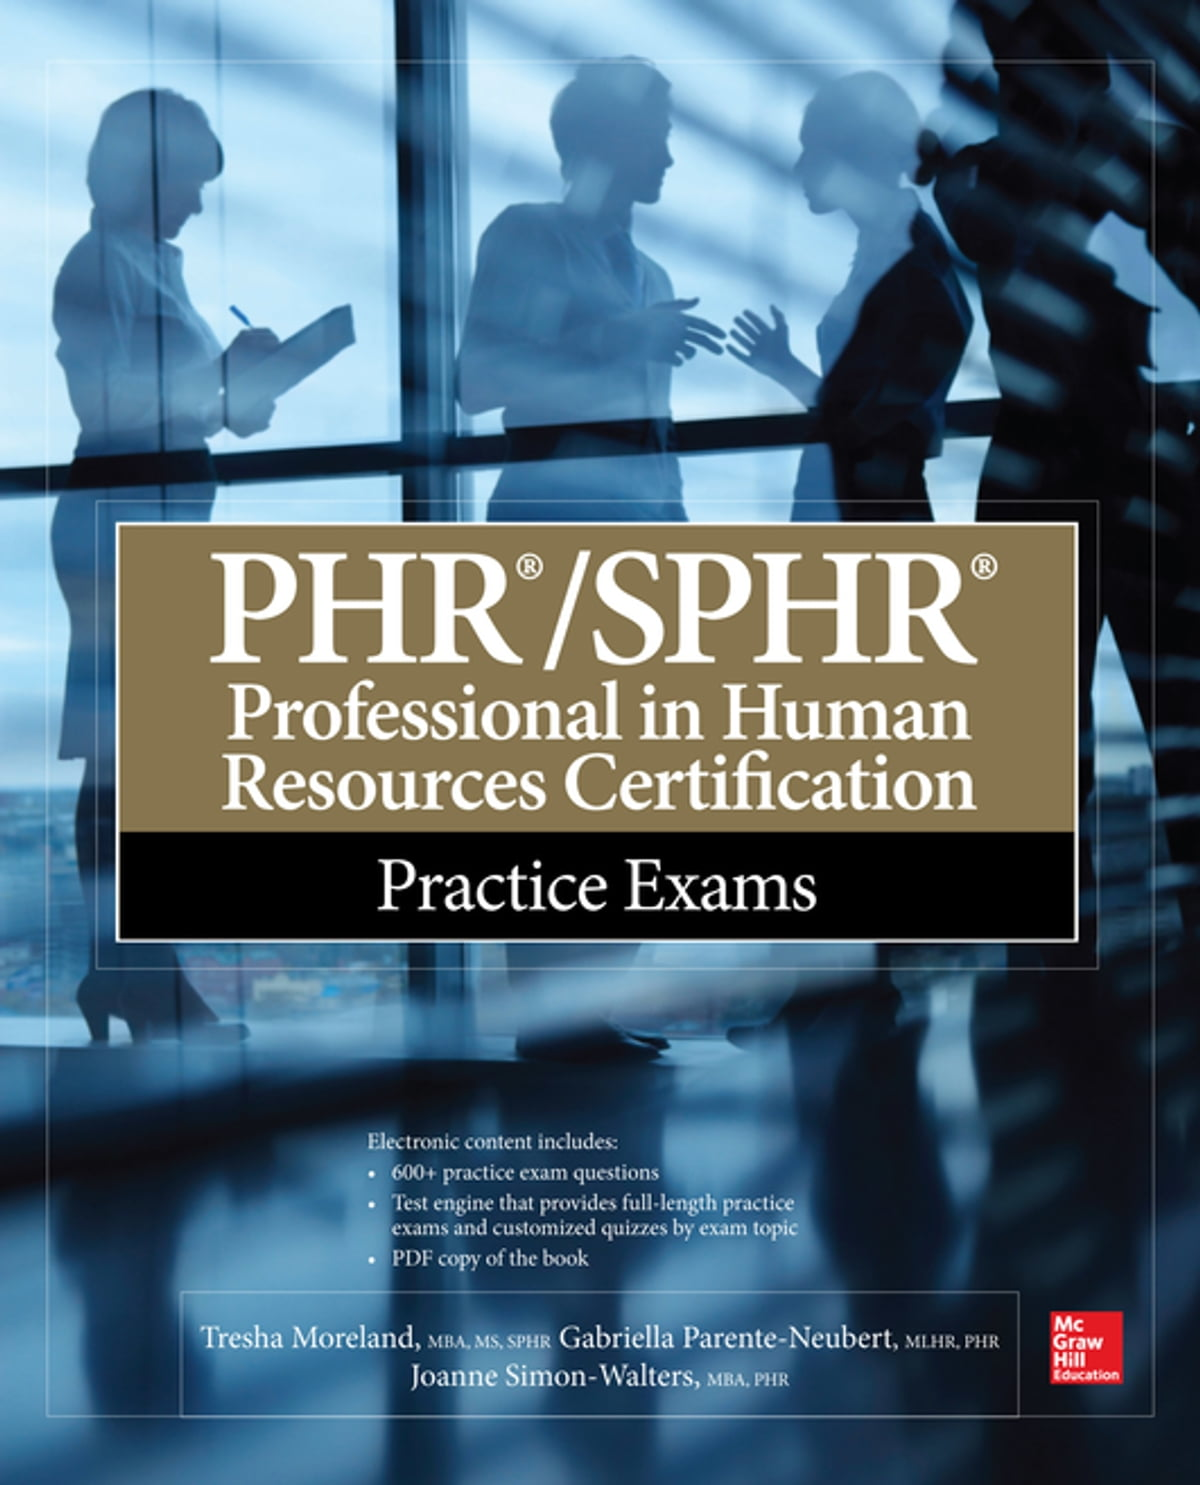 Phrsphr professional in human resources certification practice phrsphr professional in human resources certification practice exams ebook by tresha moreland 9780071840903 rakuten kobo 1betcityfo Images